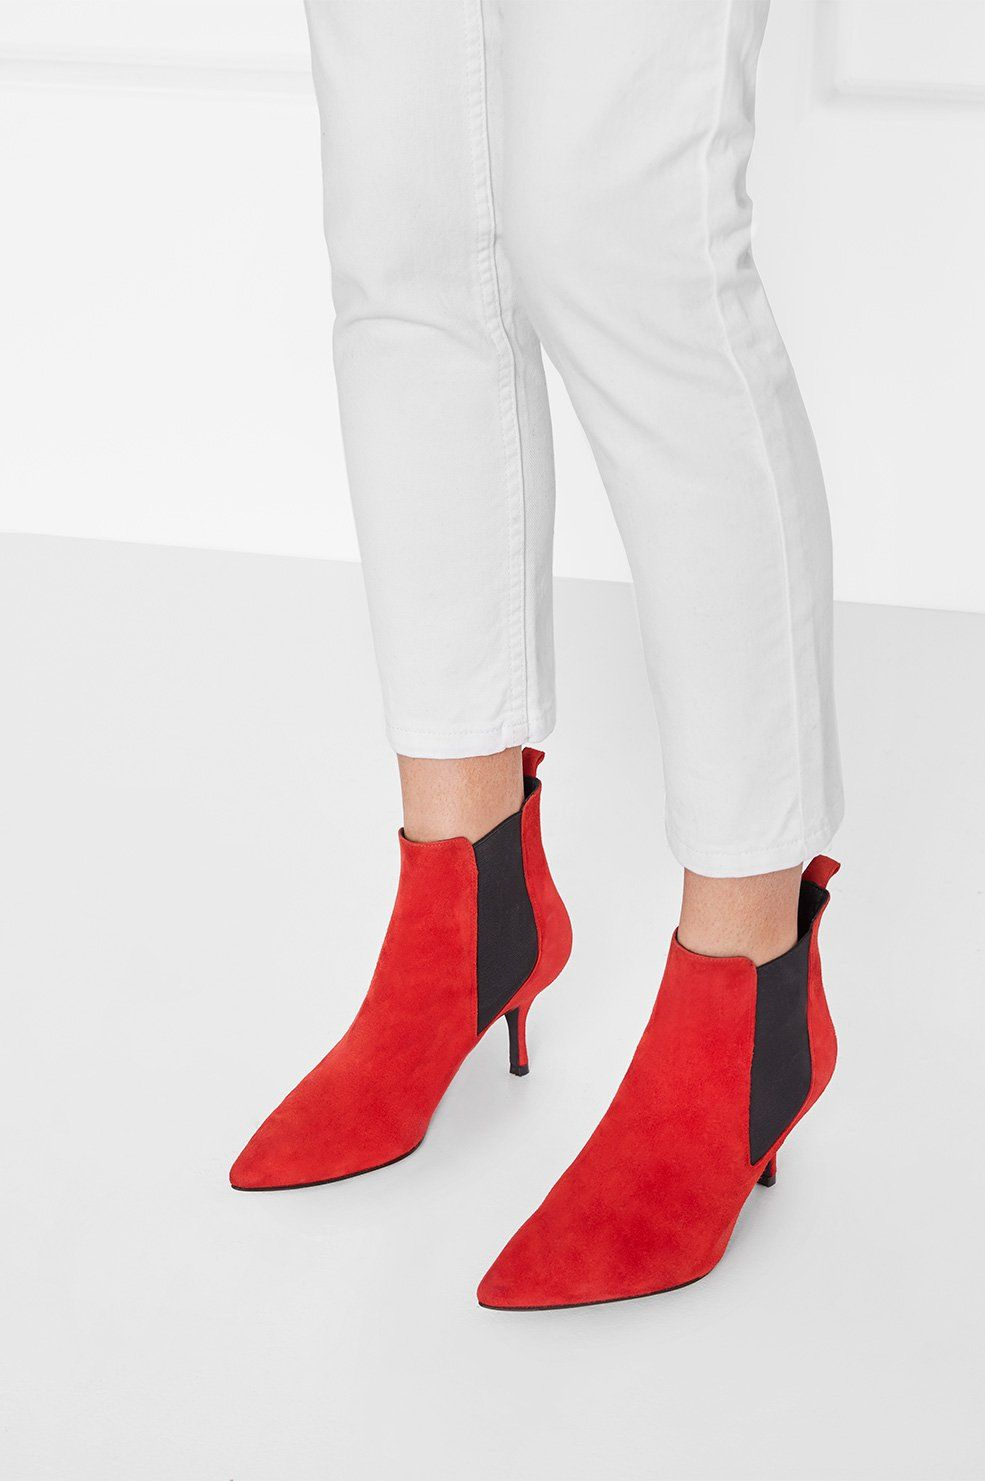 Welcome Red Suede Stevie To The Family This Pair S Soft Finish And Understated Red Hue Is The Chic Accent Your Kitten Heel Ankle Boots Boots Suede Ankle Boots